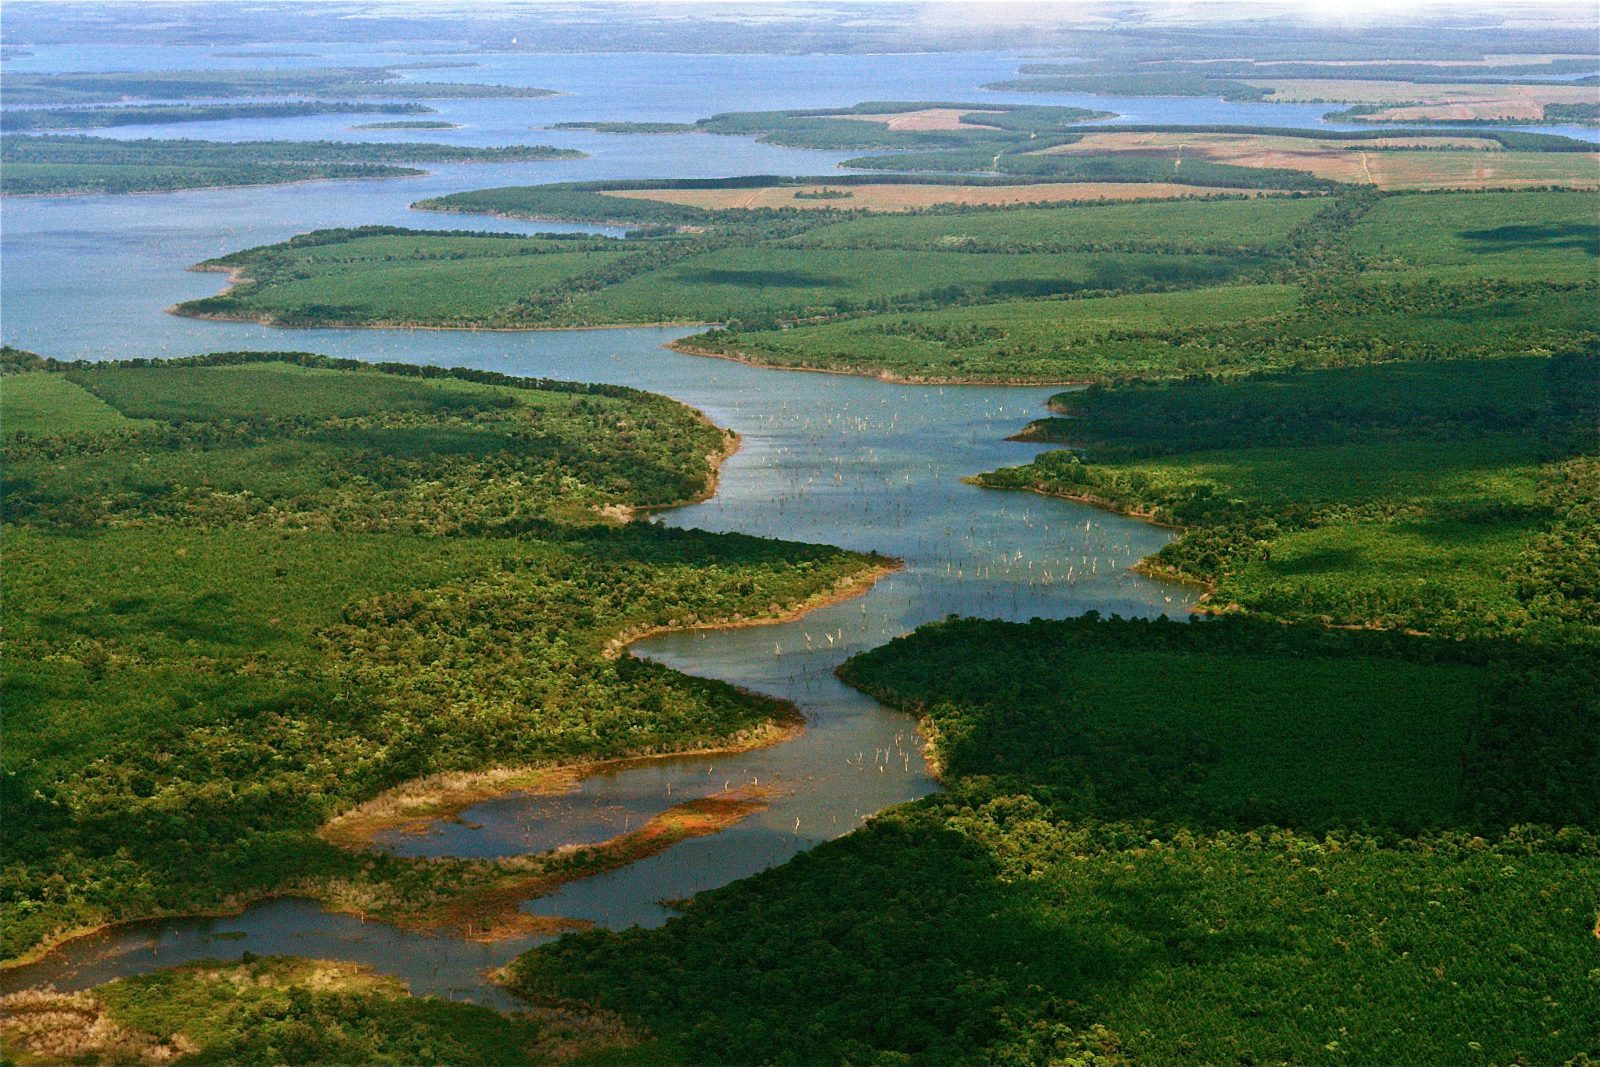 Flying_Over_Esteros_del_Iberá_The_kingdom_of_water,_North-eastern_Argentina